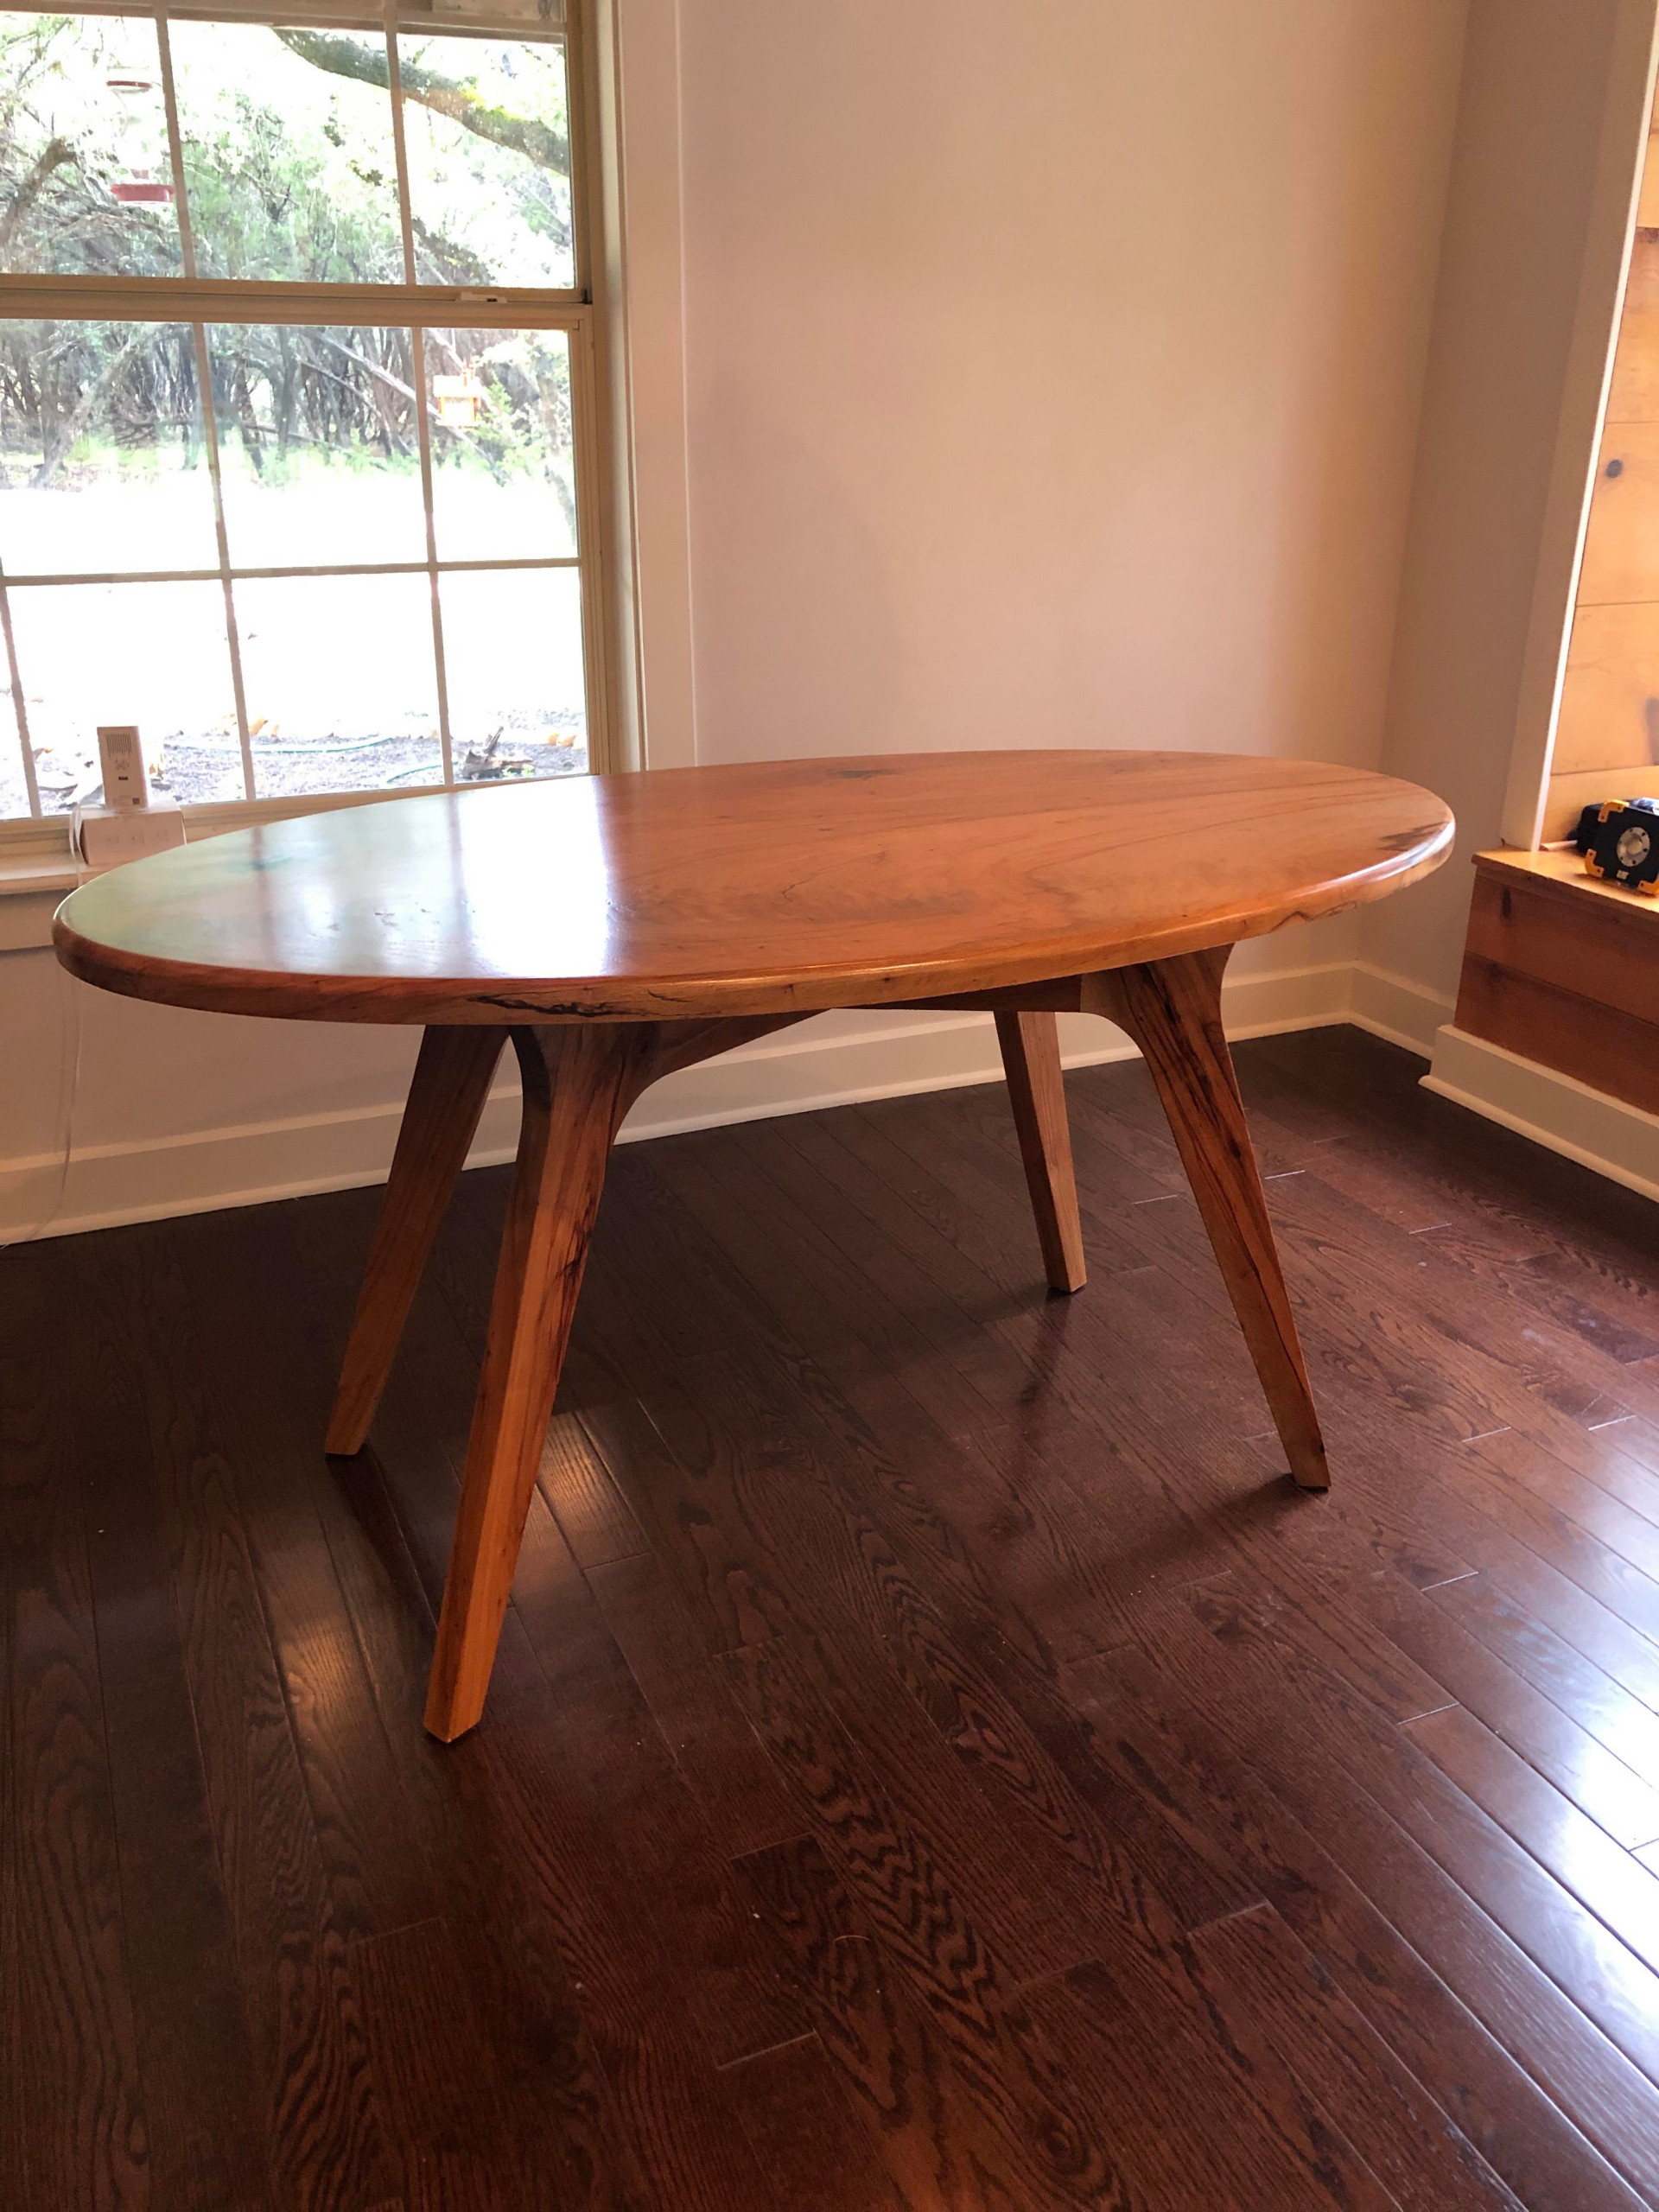 Pecan Oval Dining Table